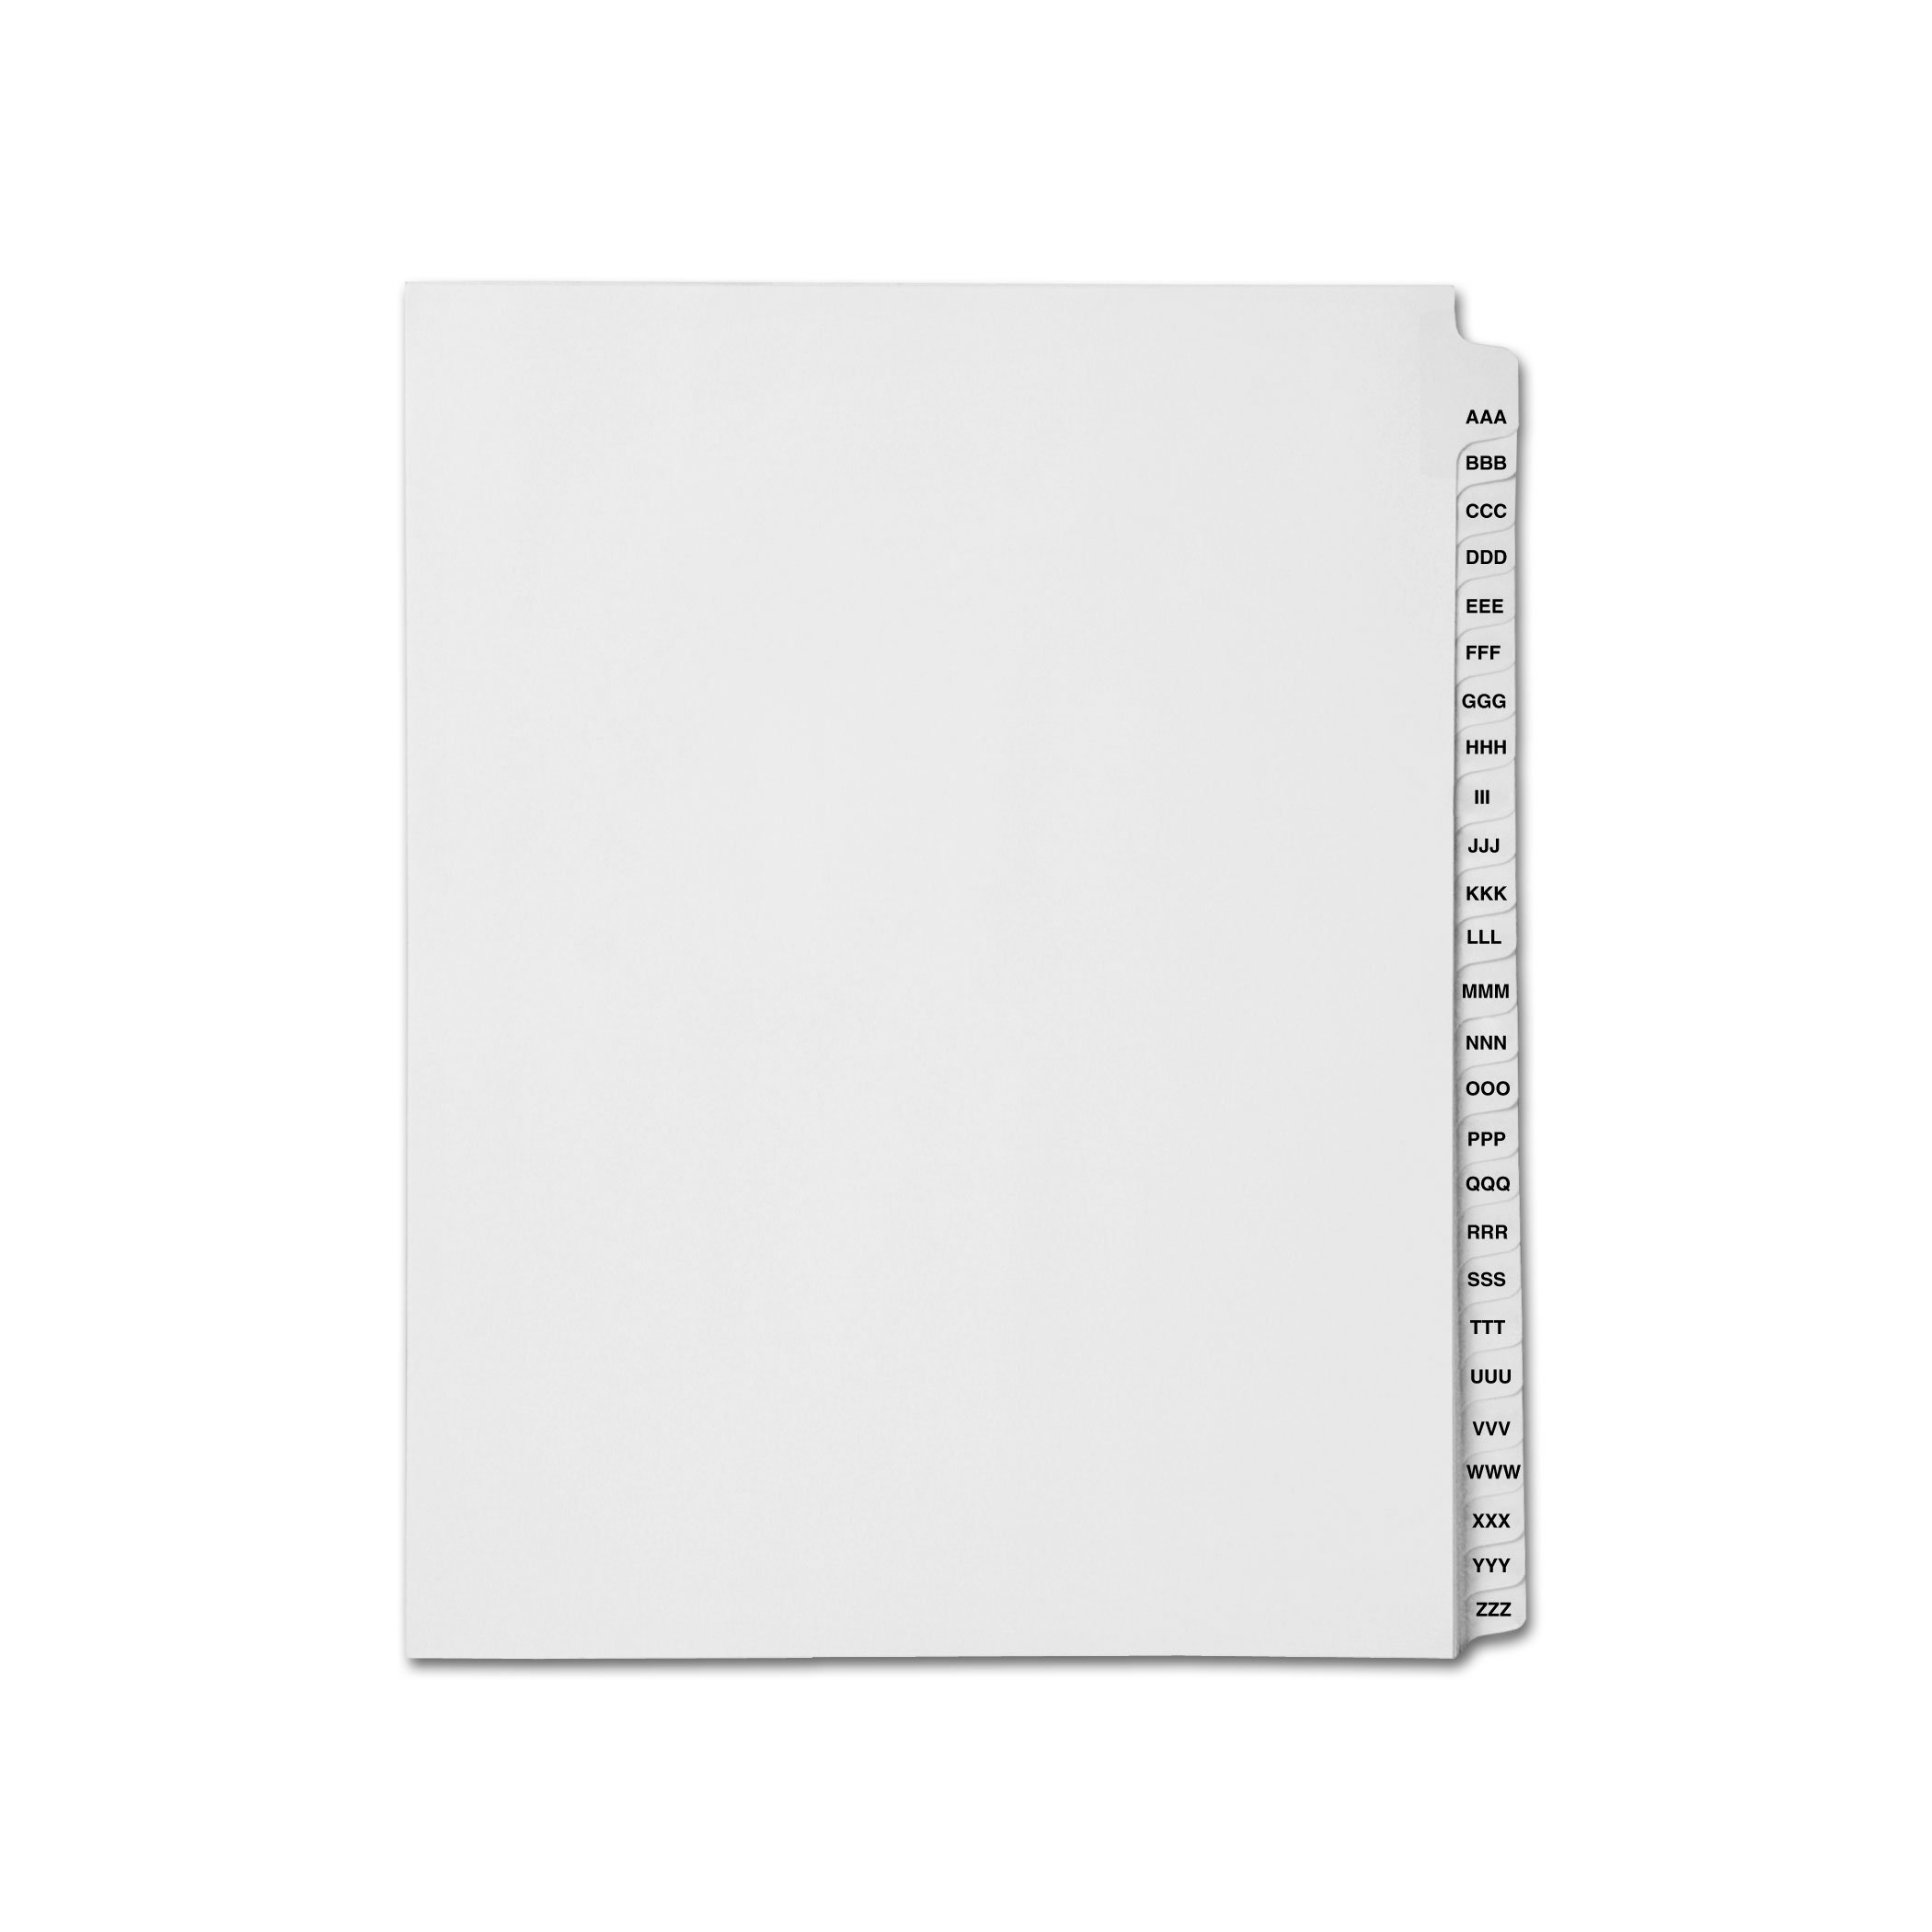 AMZfiling Collated Legal Index Tab Dividers, Compatible with Avery- Alphabet AAA-ZZZ, Letter Size, White, Side Tabs (26 Sheets/pkg)